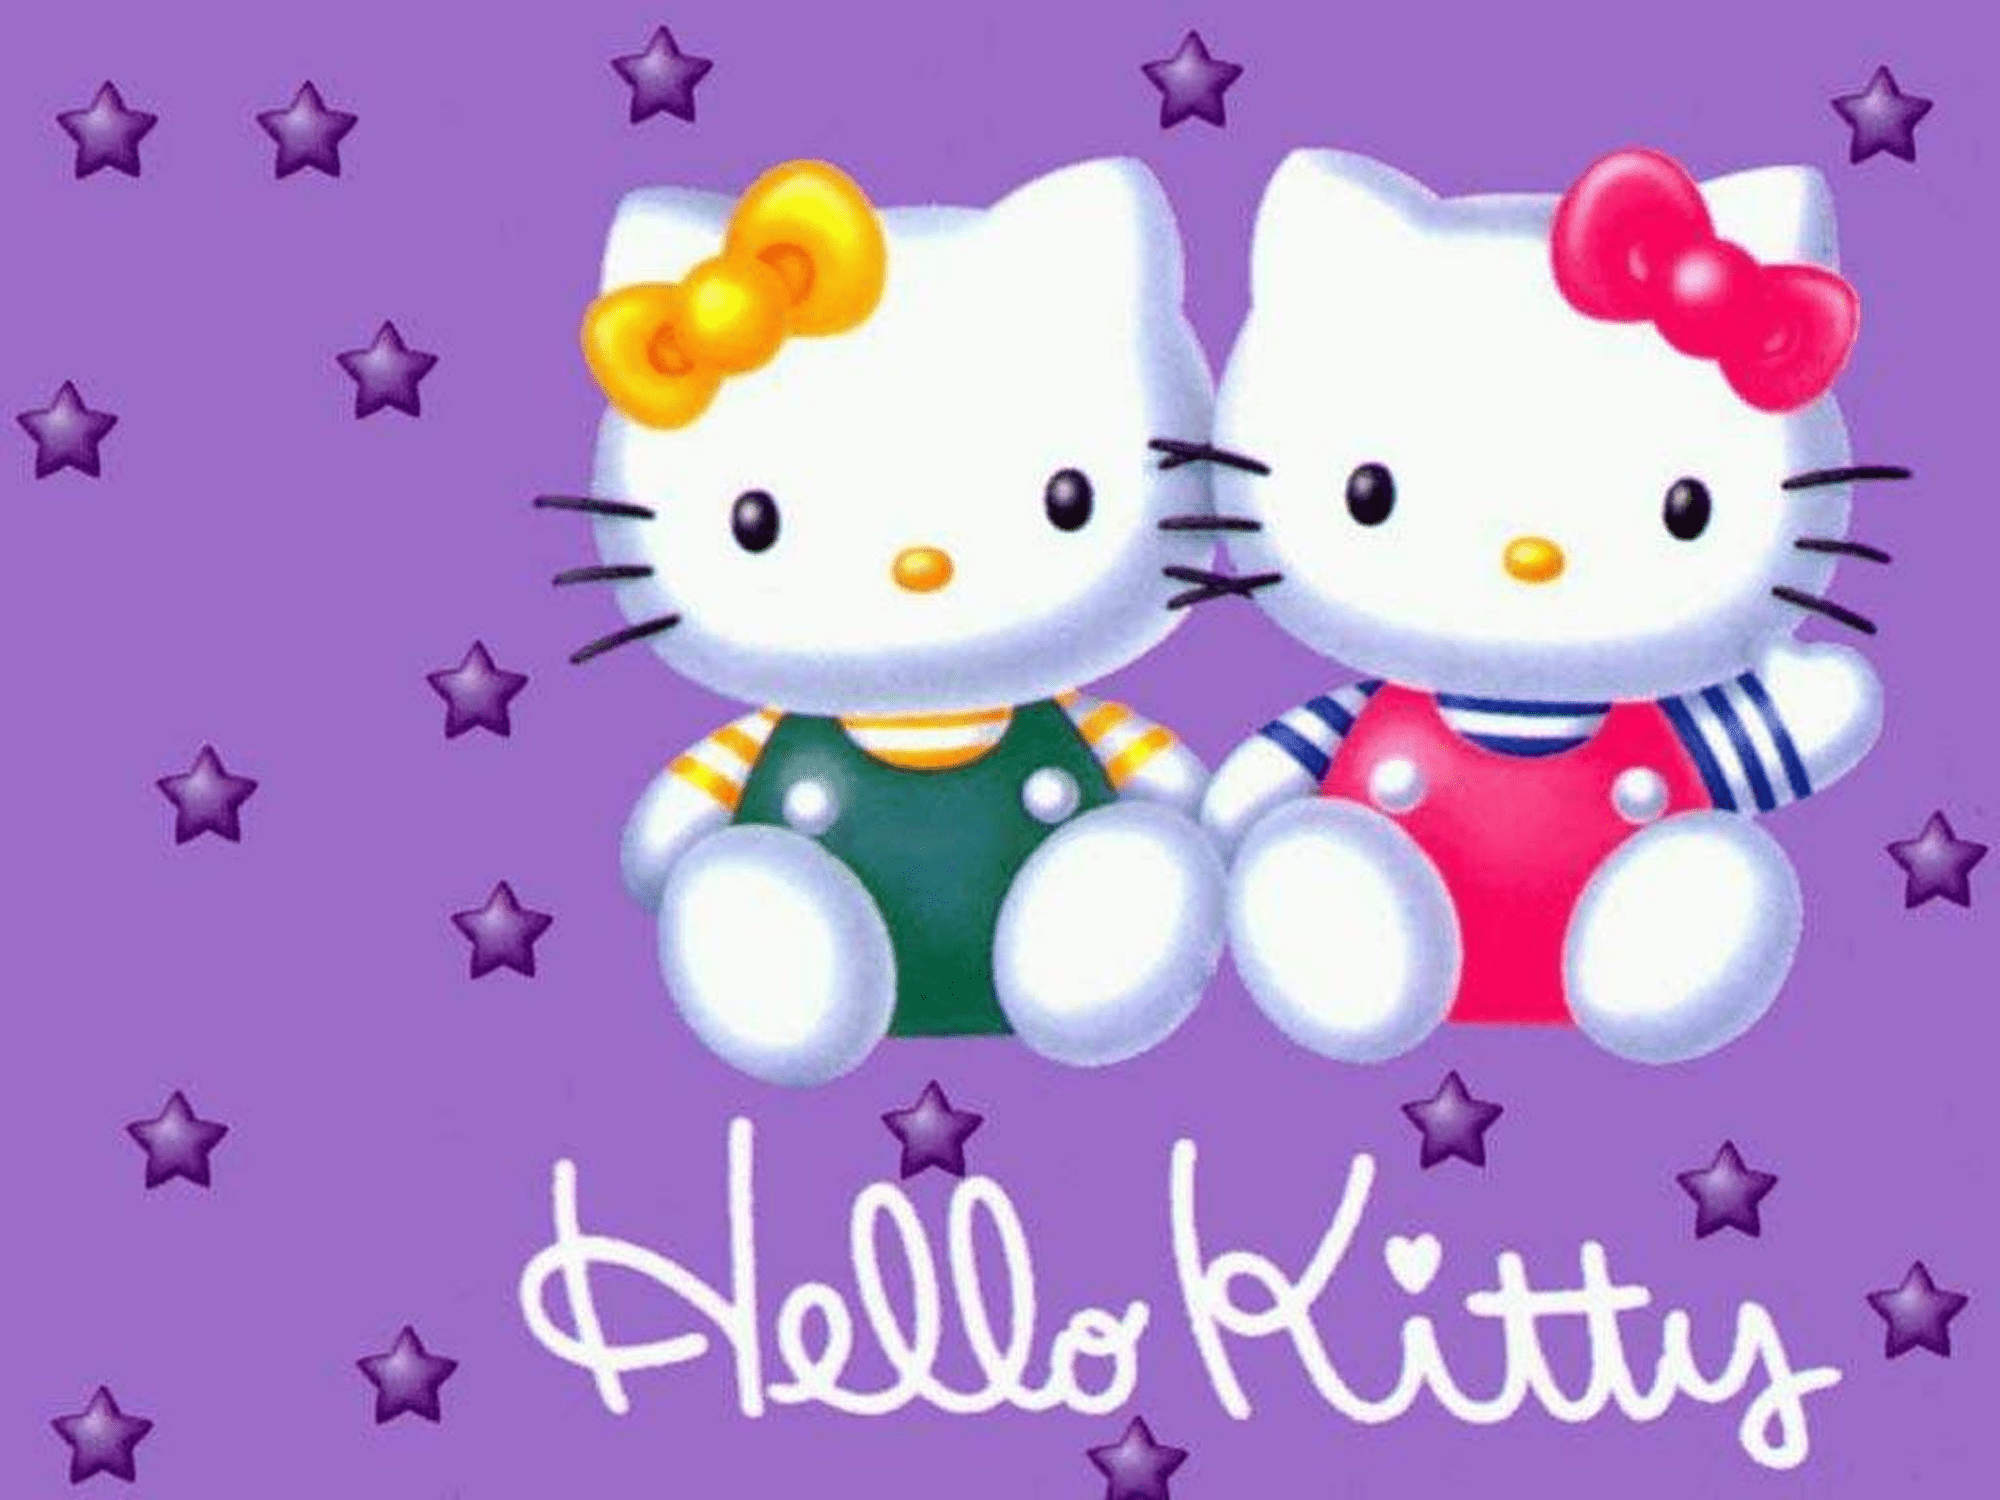 Hello Kitty and Friends Wallpapers - Top Free Hello Kitty